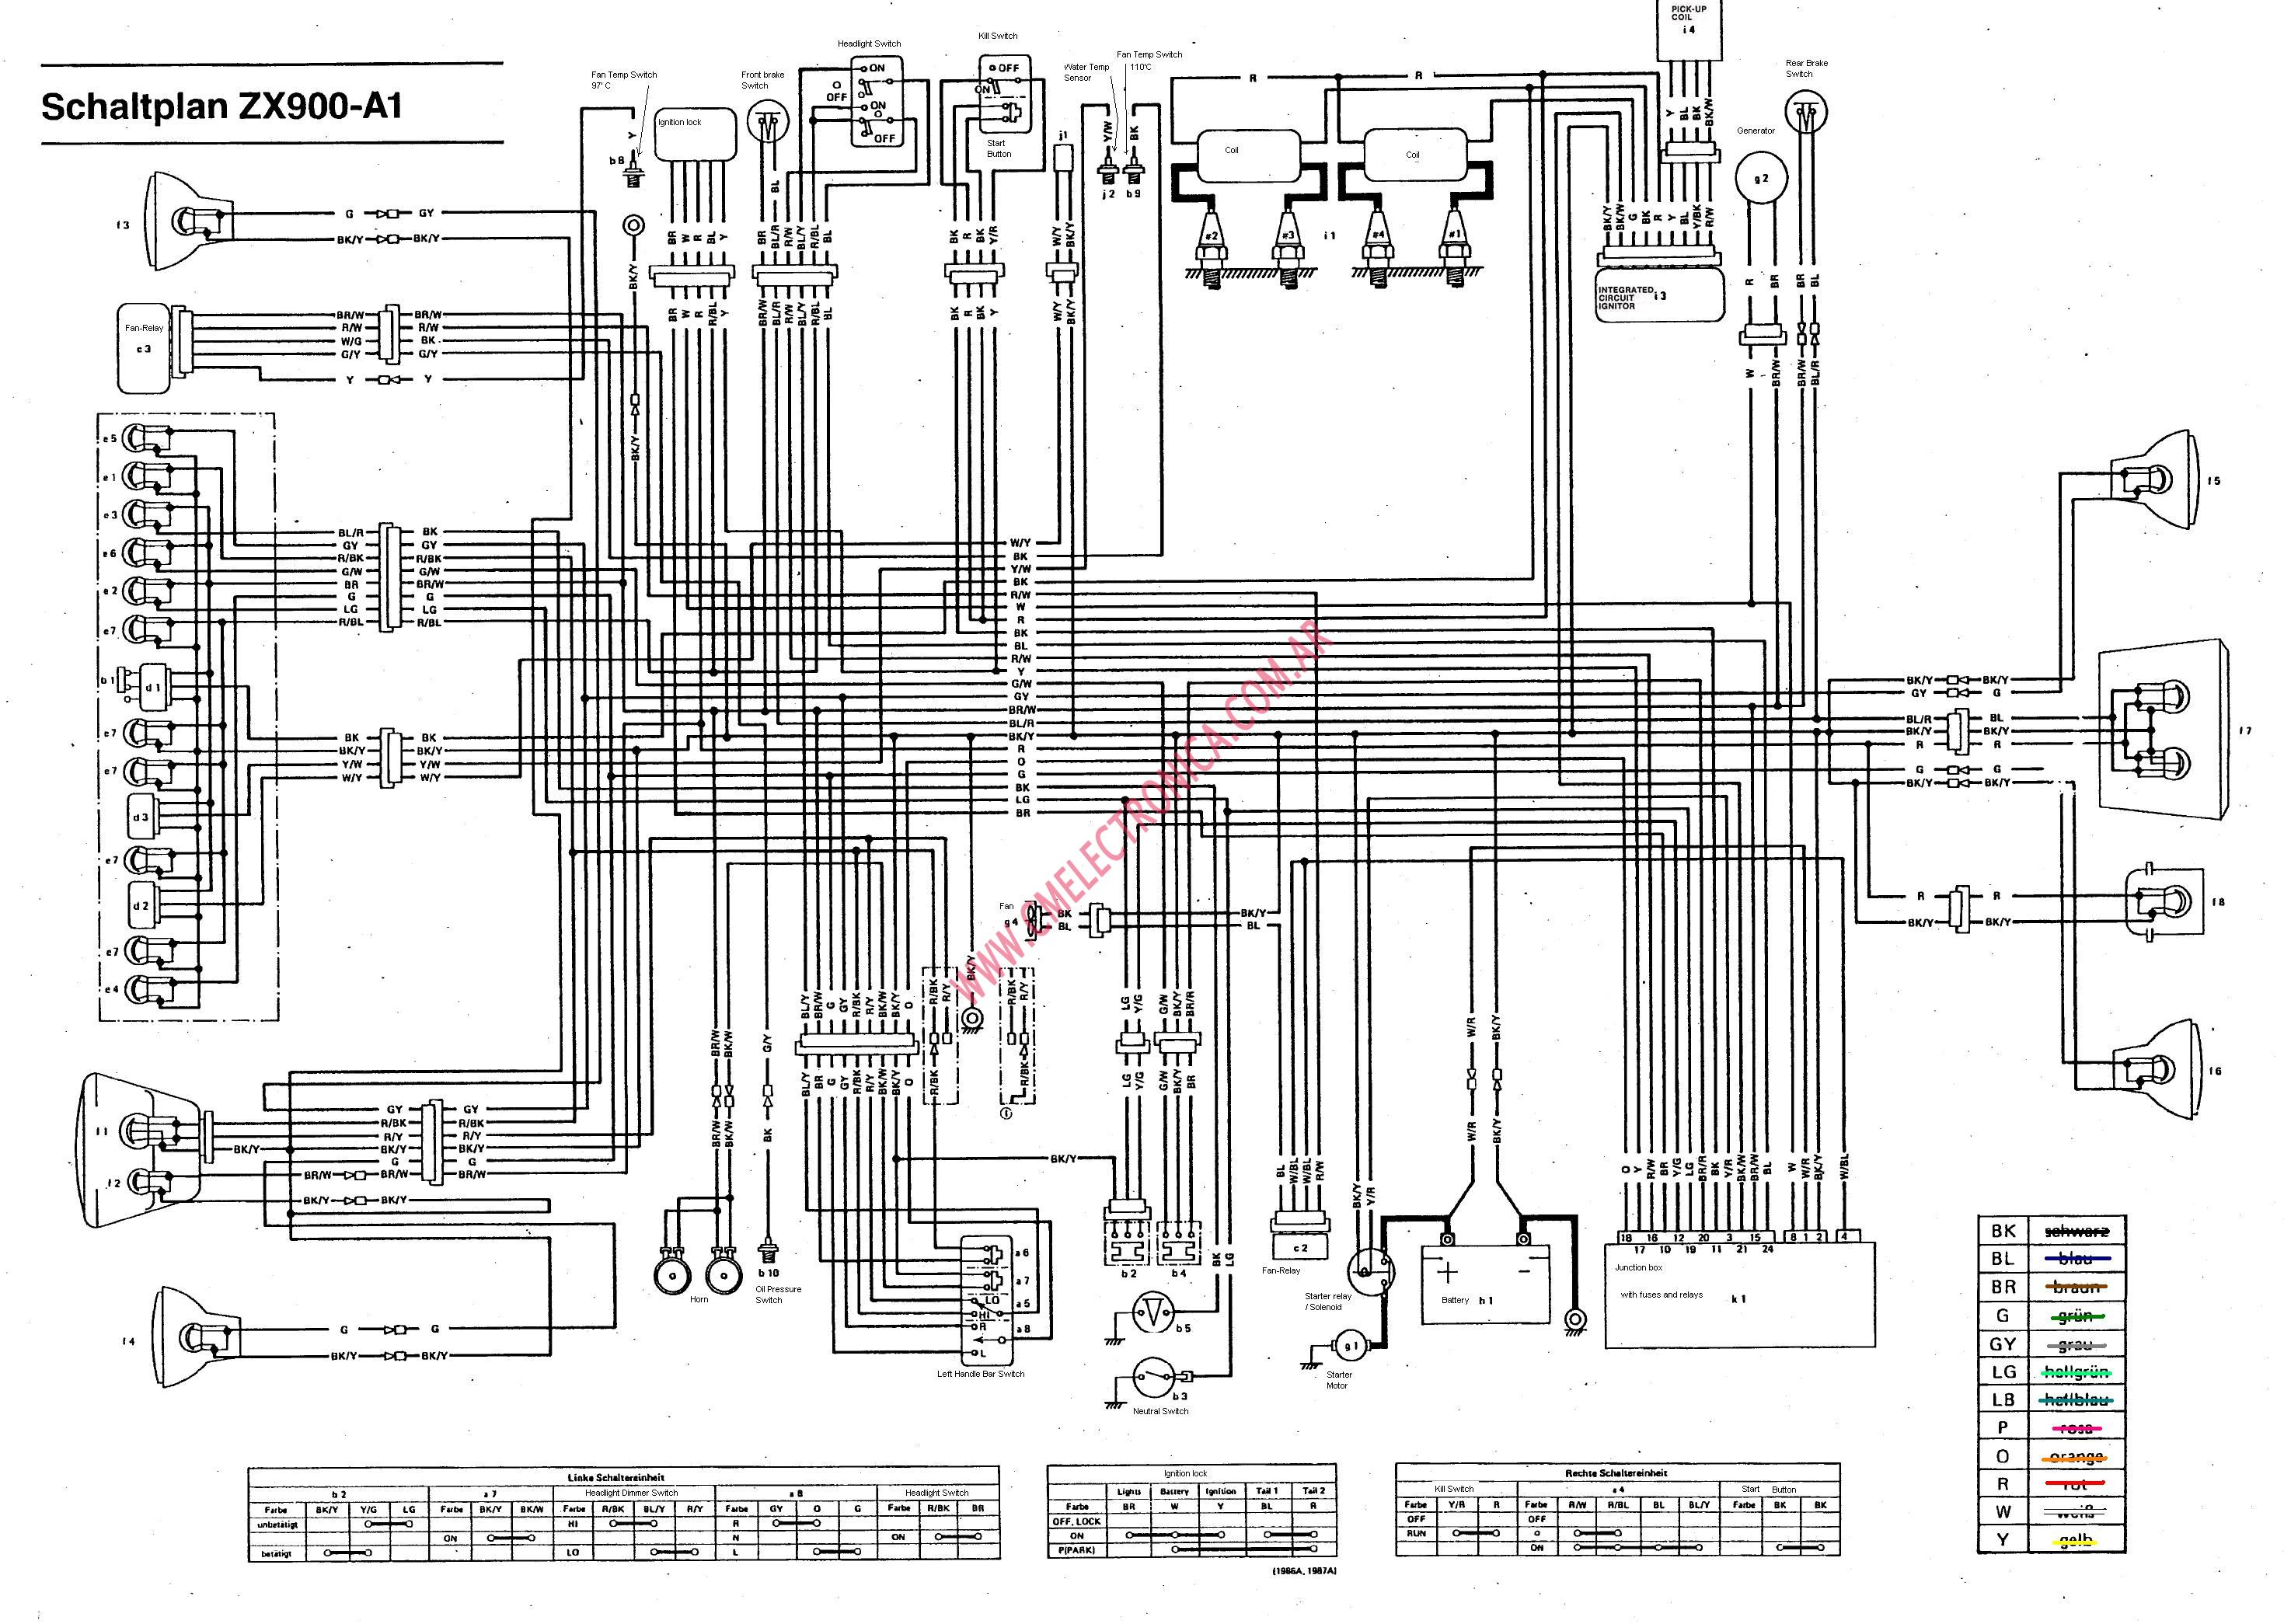 Kawasaki Gpz 400 Wiring Diagram Great Design Of Farmall 750 Free Engine Image For User 1986 550